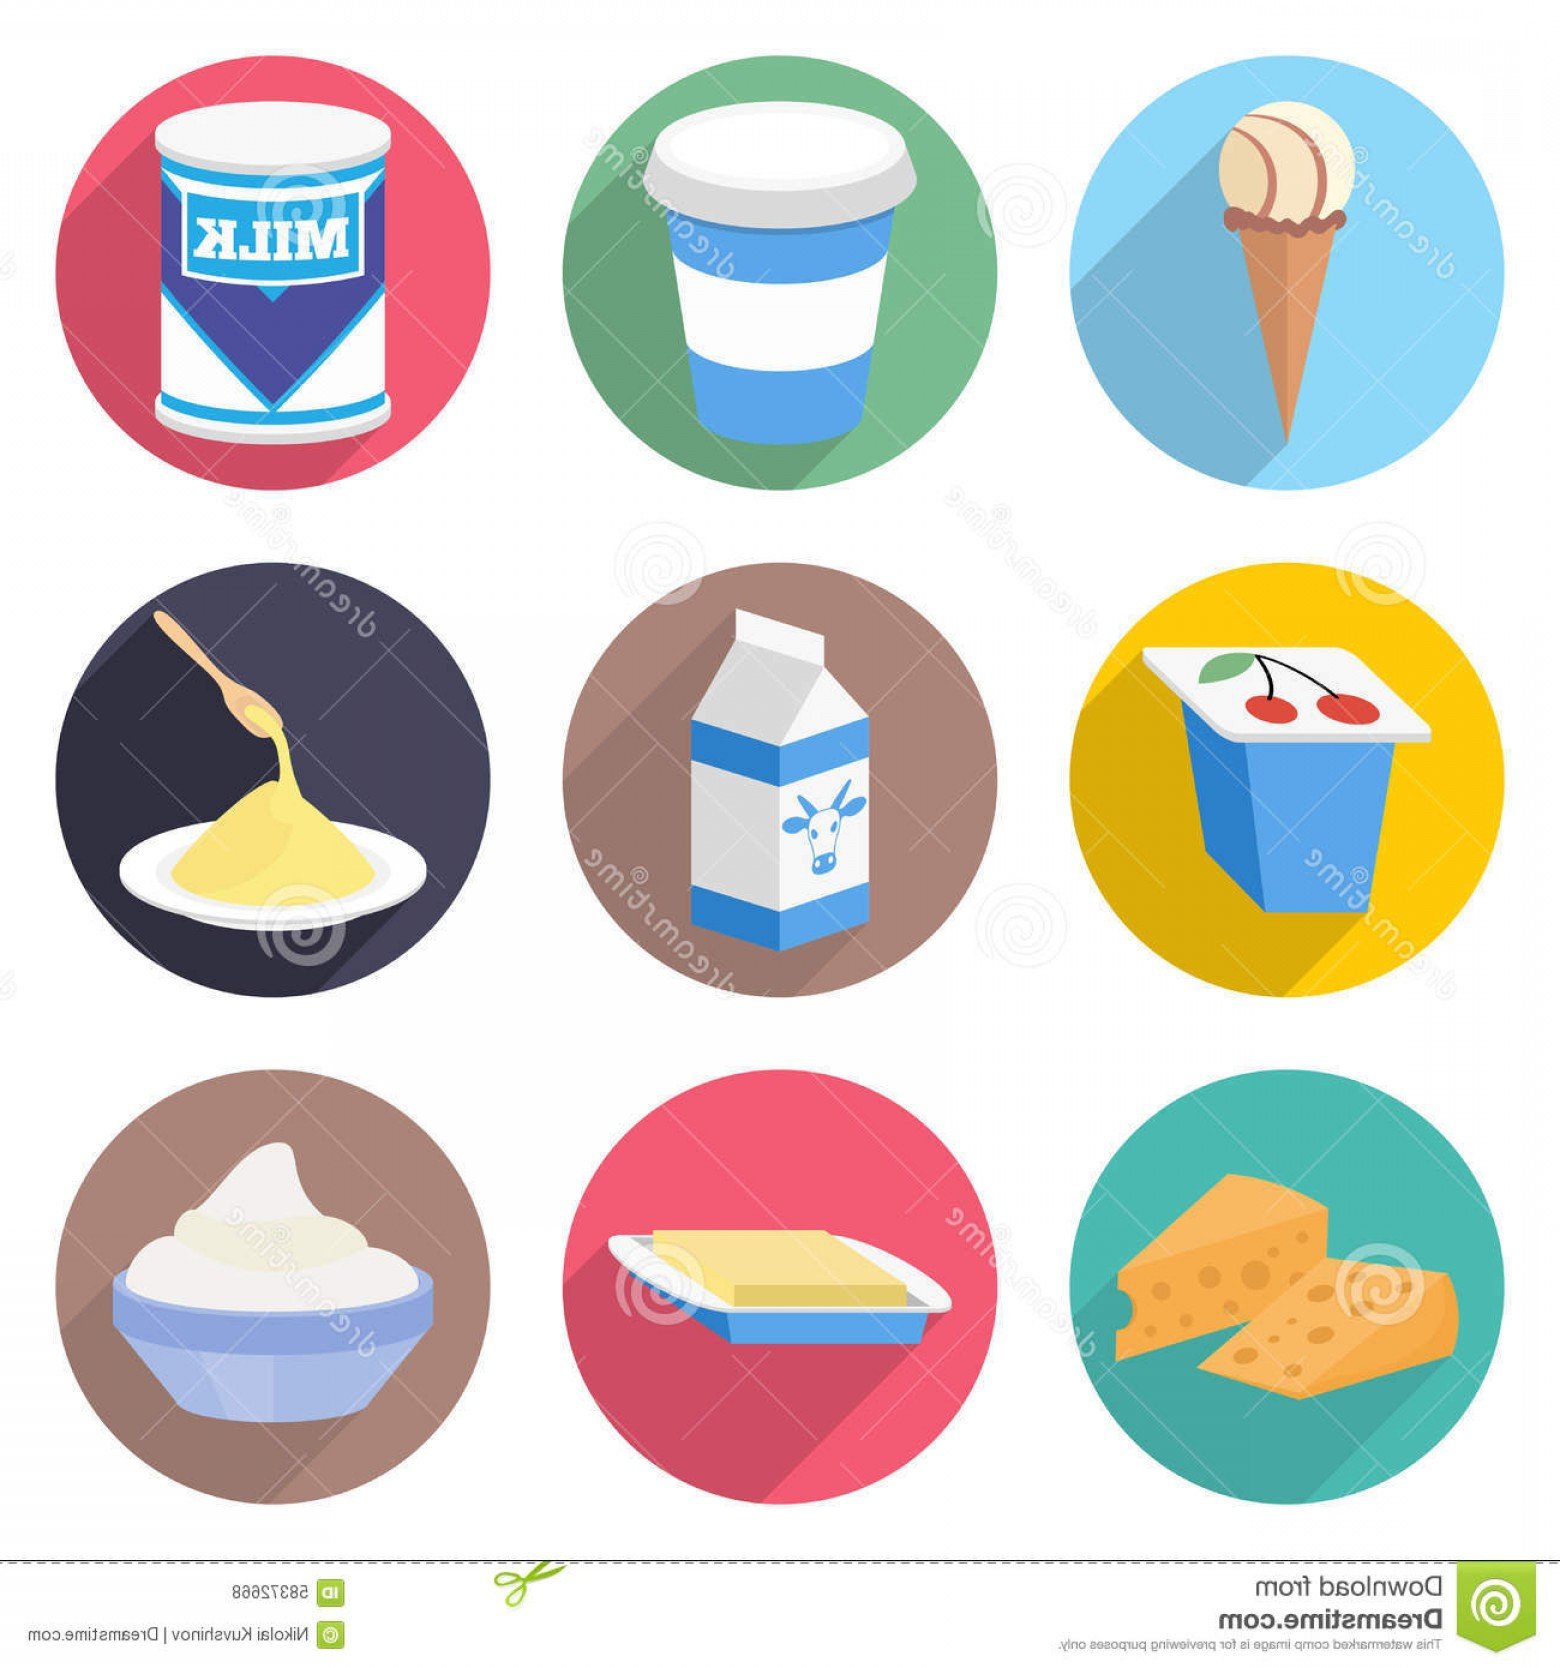 Yogurt Vector: Stock Illustration Milk Products Vector Icon Set Yogurt Ice Cream Cheese Butter Image